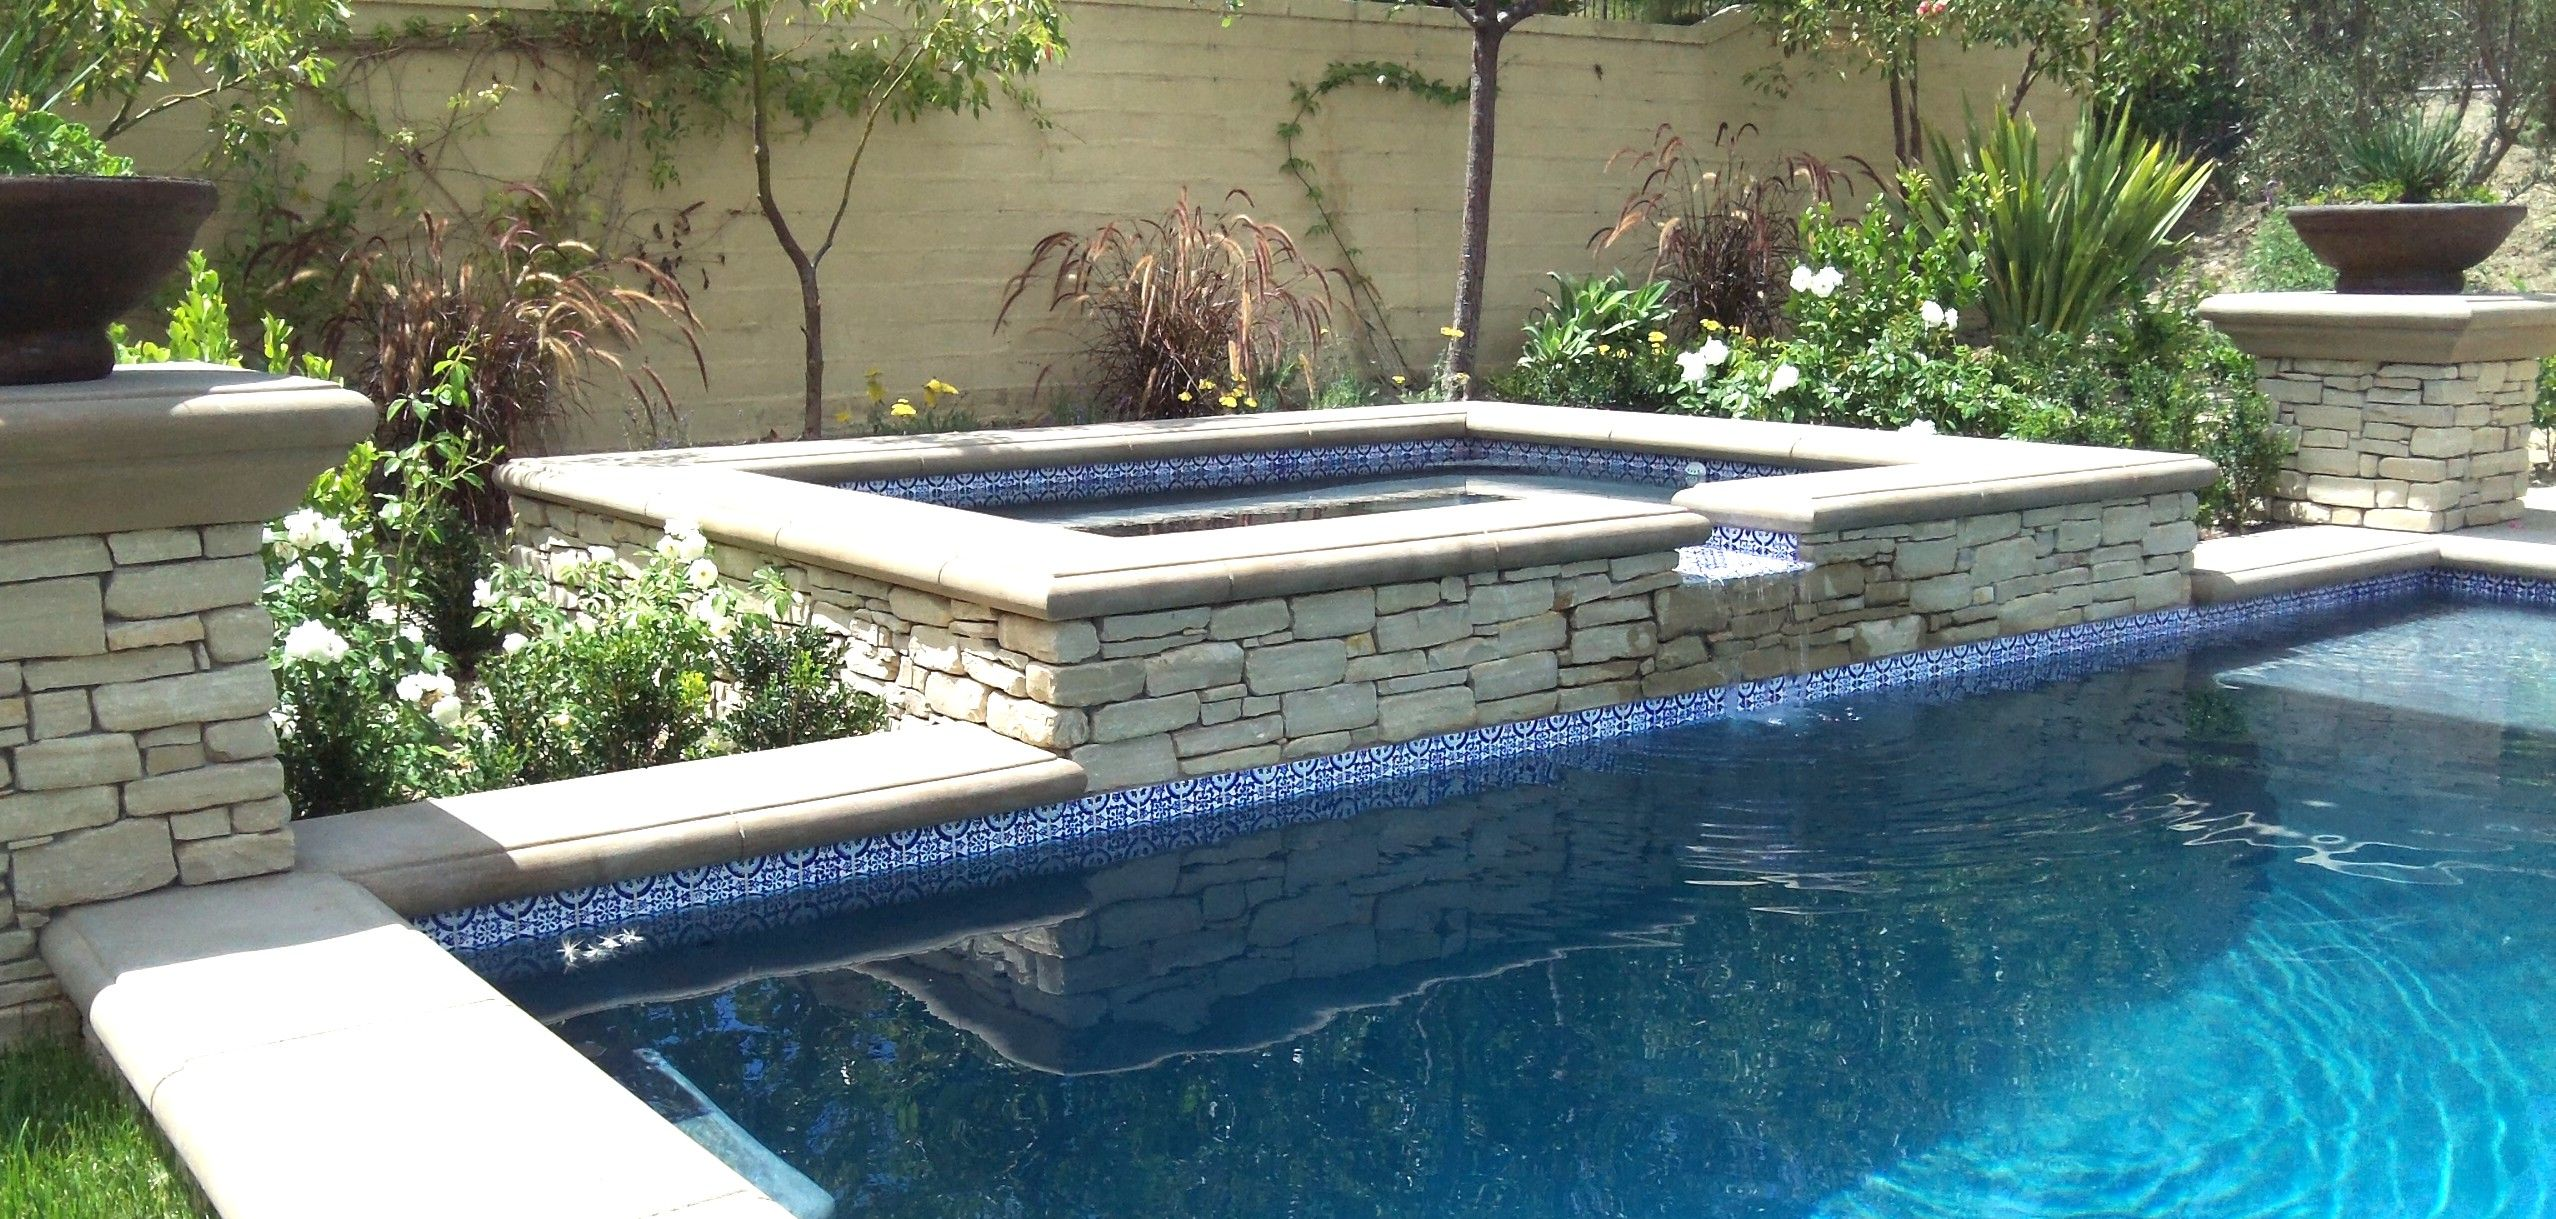 Pool tile designs pool water fountain design ideas small for Small swimming pool design